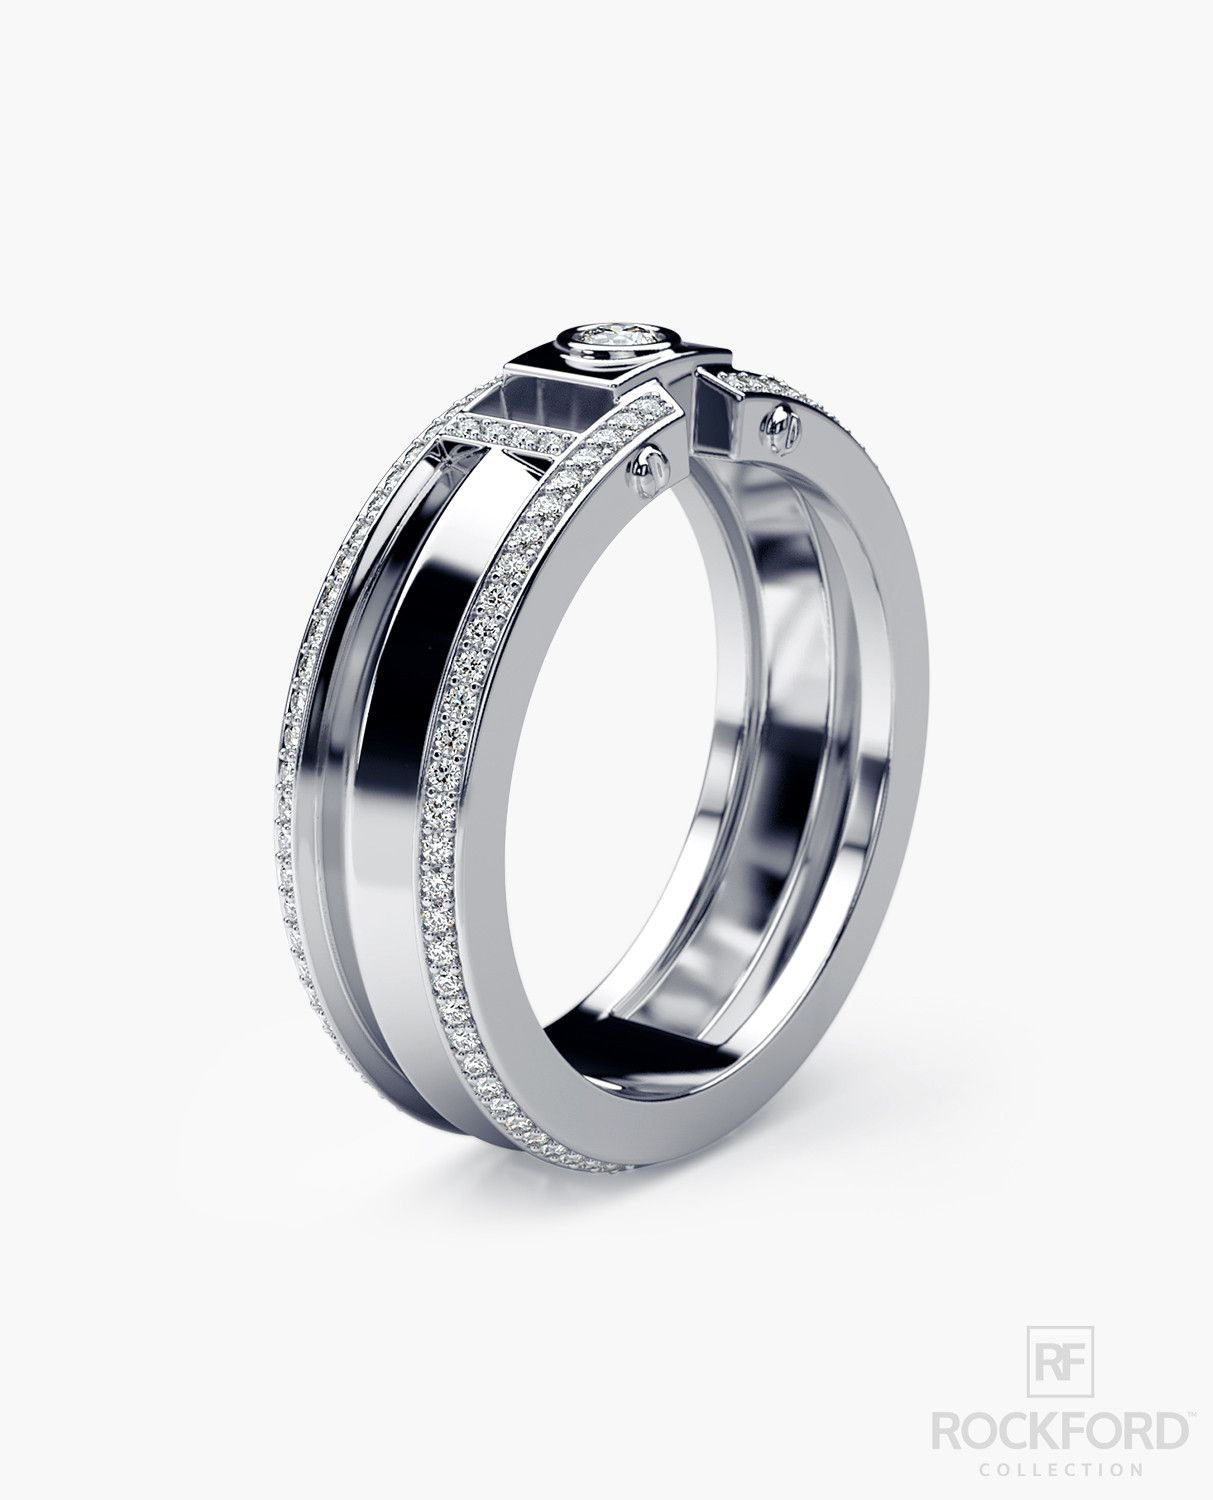 Cleburne Gold Mens Wedding Band With 045 Ct Diamonds